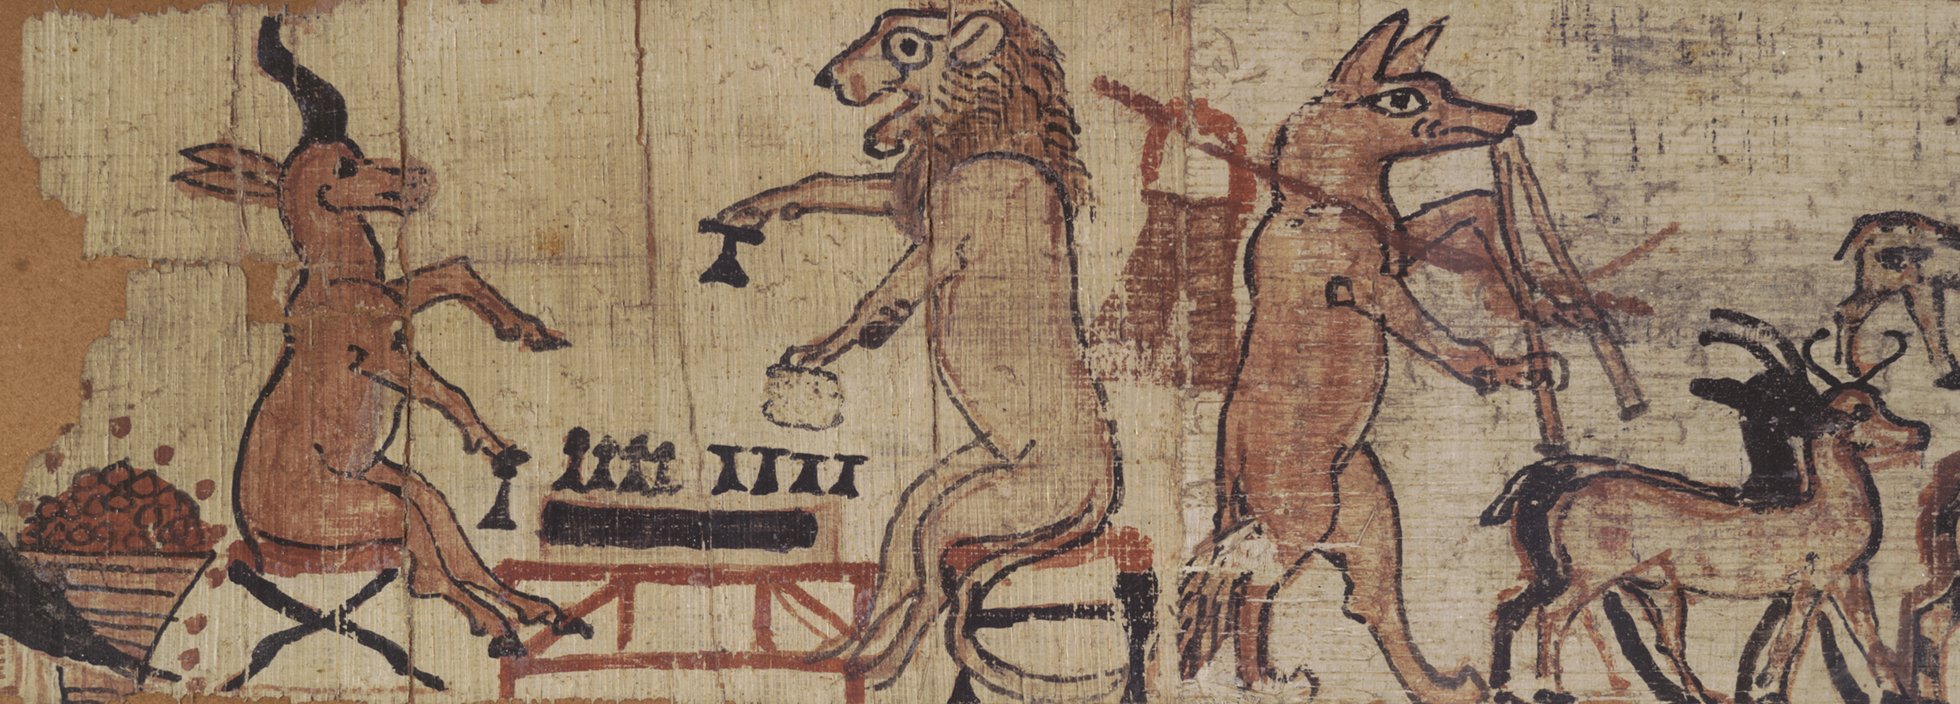 A papyrus showing a gazelle and a lion sitting on low stools playing a game on a table, possible senet.